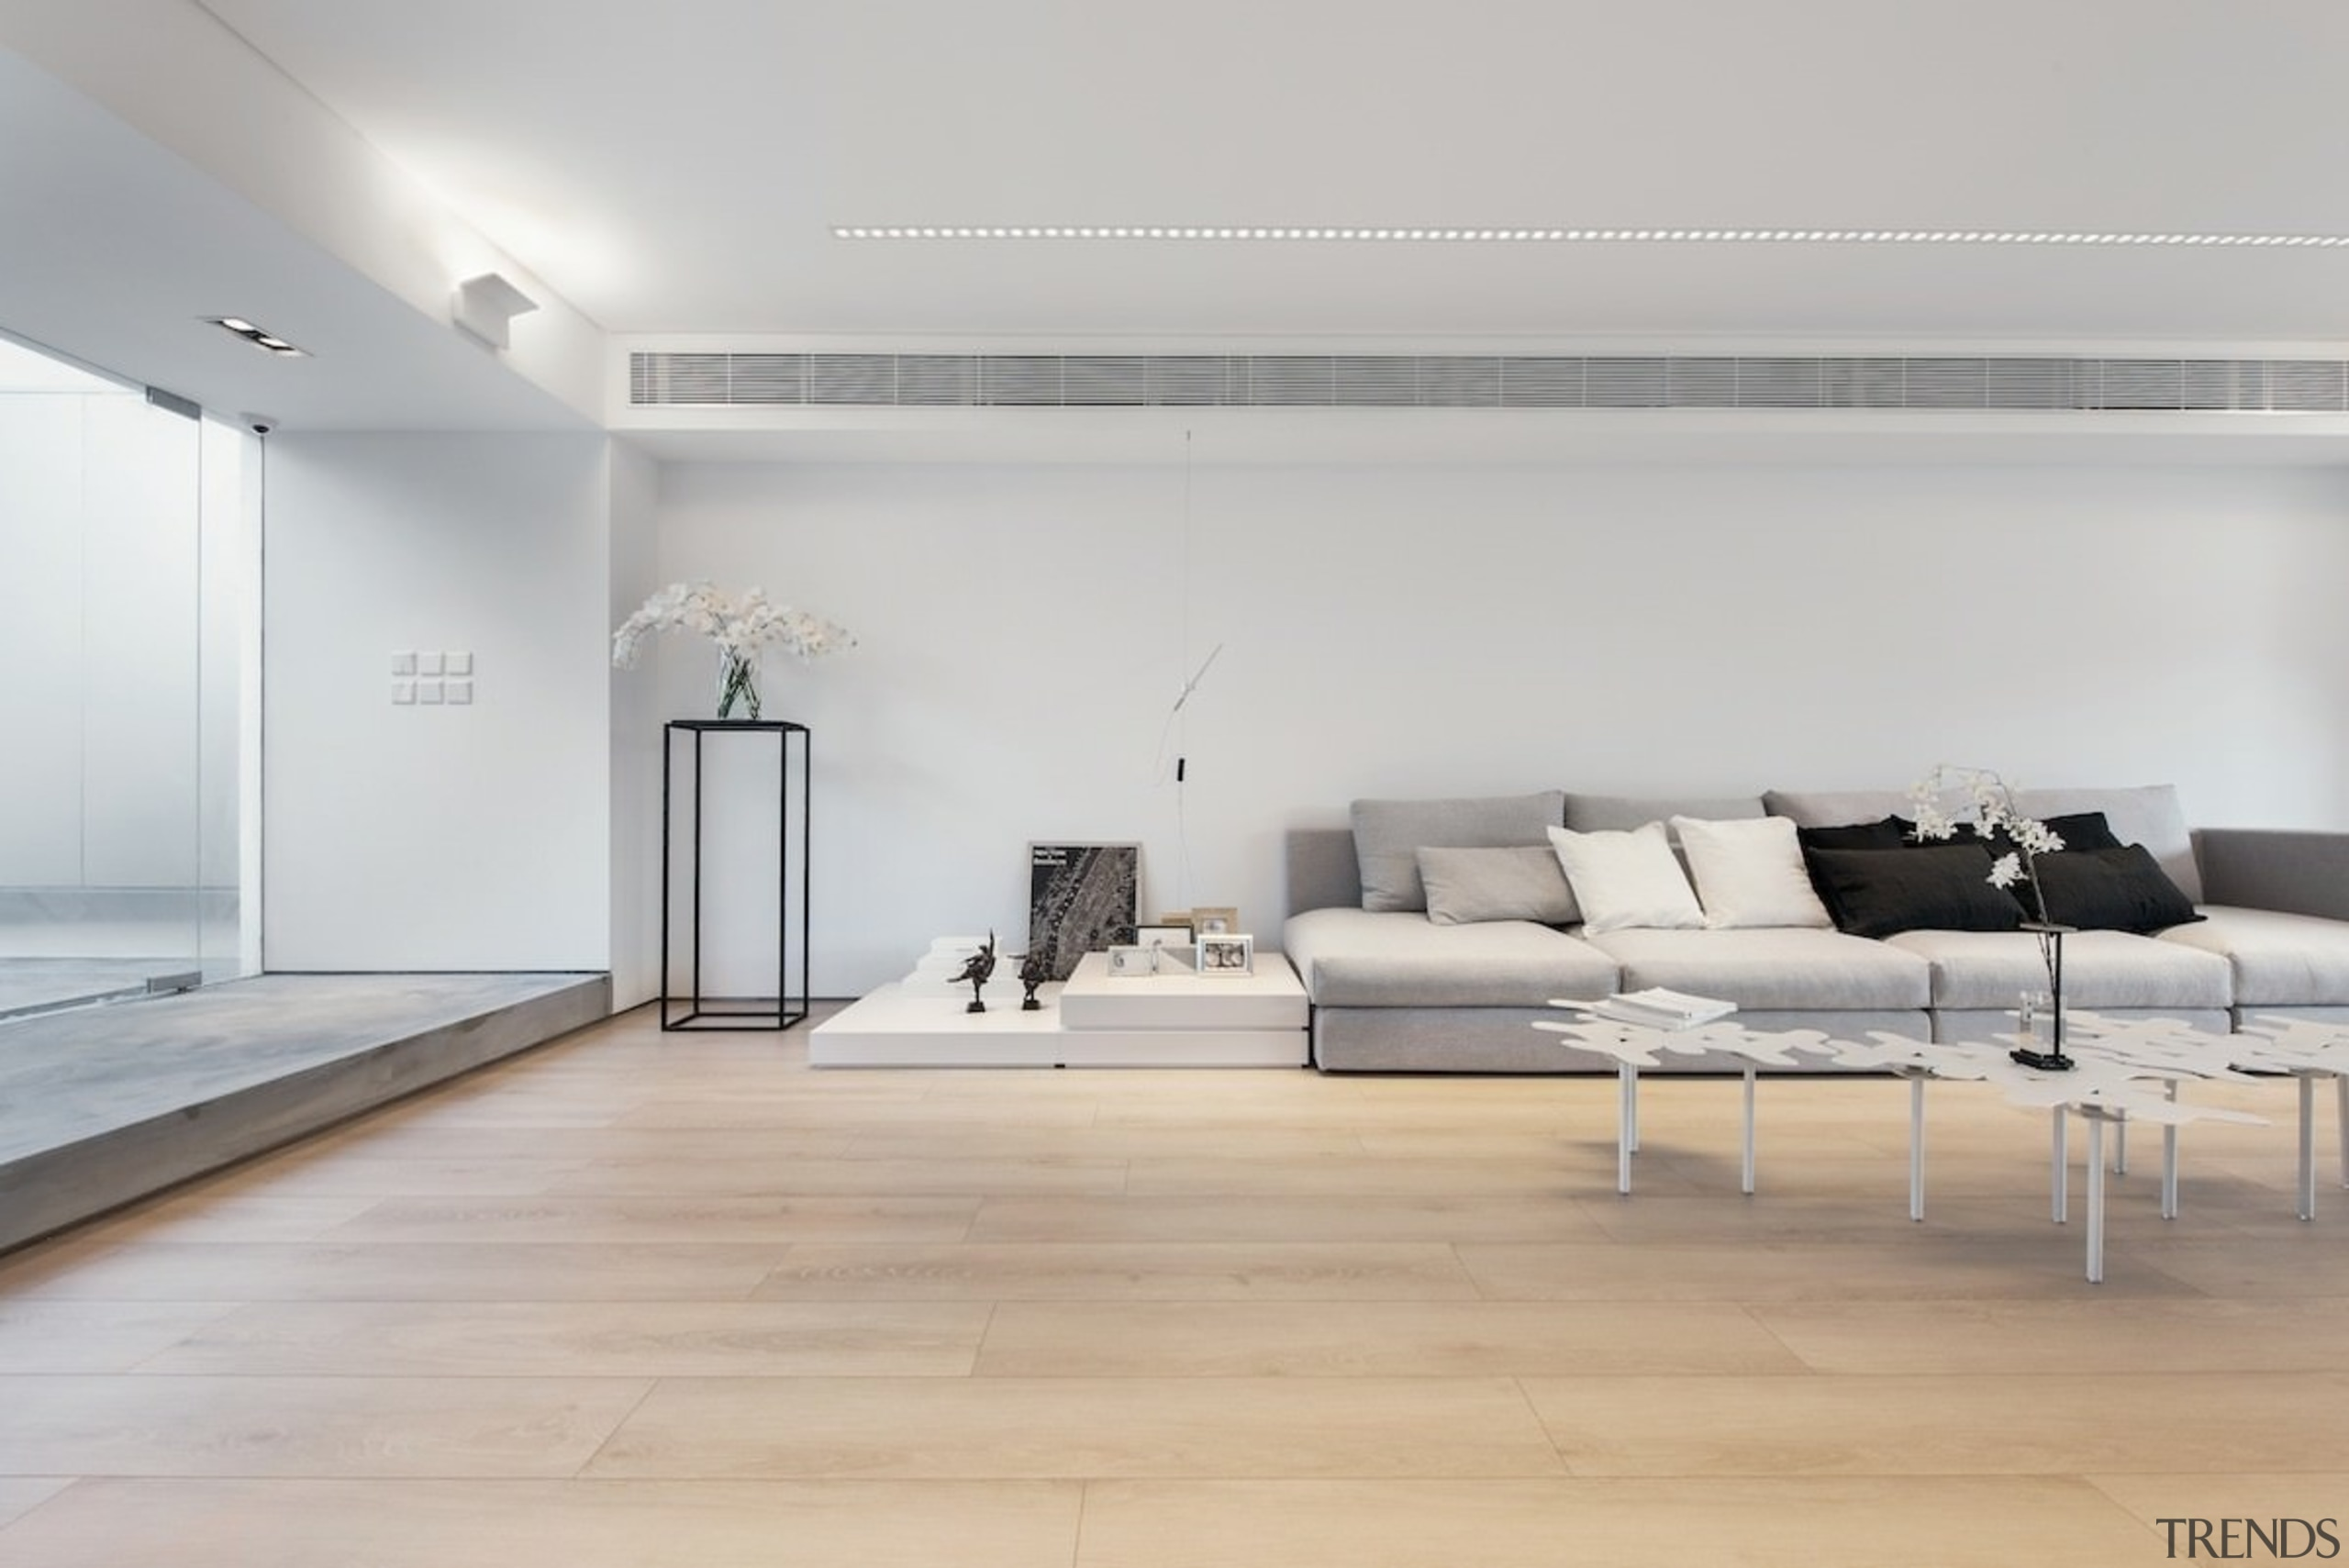 This expansive living room has the feel of architecture, ceiling, floor, flooring, furniture, interior design, laminate flooring, living room, product design, table, wall, wood, wood flooring, gray